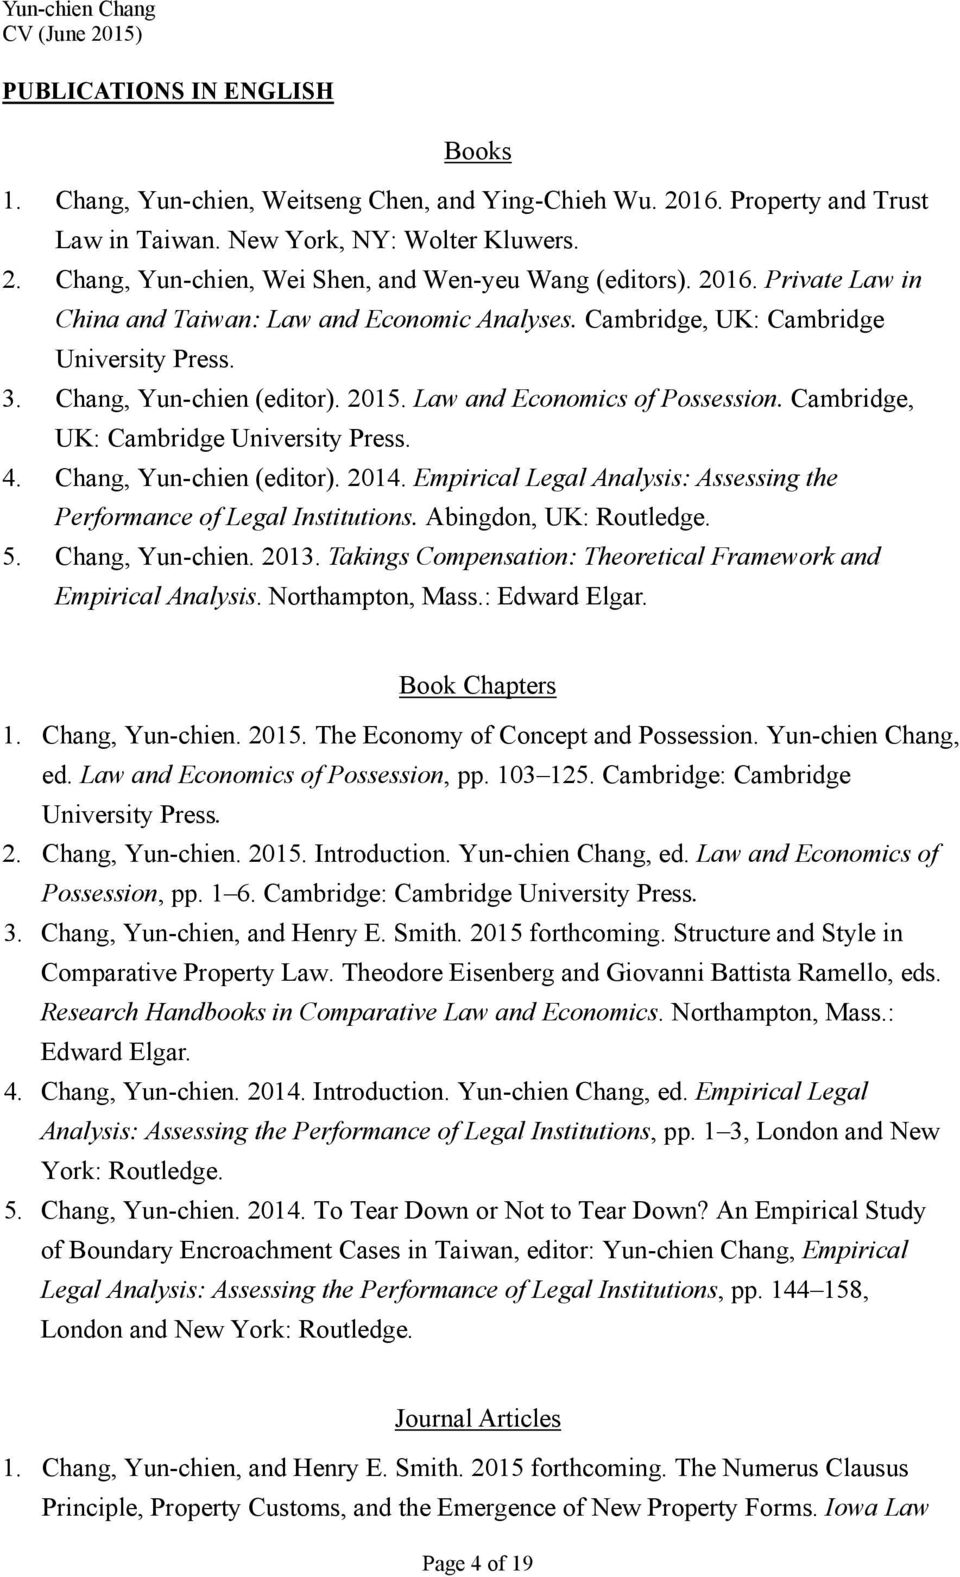 Cambridge, UK: Cambridge University Press. 4. Chang, Yun-chien (editor). 2014. Empirical Legal Analysis: Assessing the Performance of Legal Institutions. Abingdon, UK: Routledge. 5. Chang, Yun-chien. 2013.